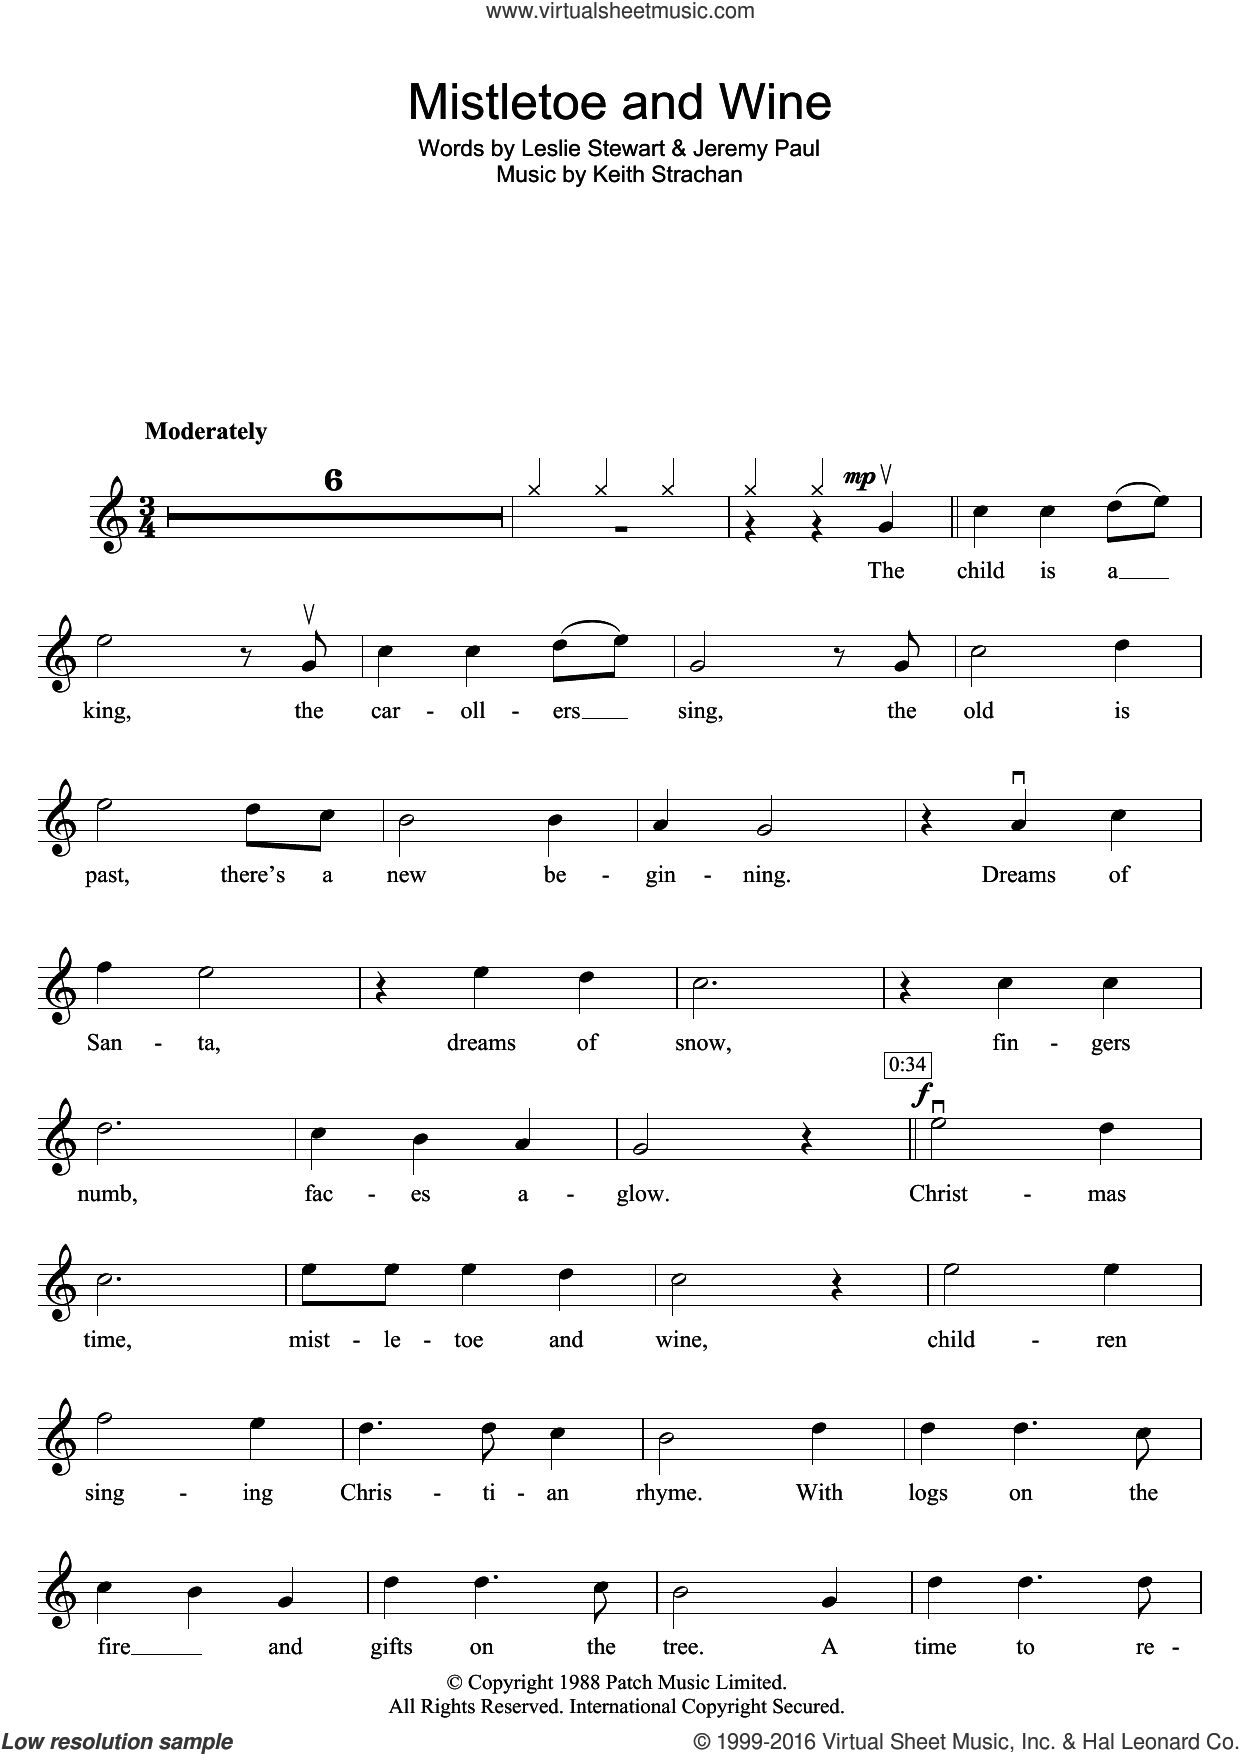 Mistletoe And Wine sheet music for violin solo by Cliff Richard, Jeremy Paul, Keith Strachan and Leslie Stewart, intermediate skill level